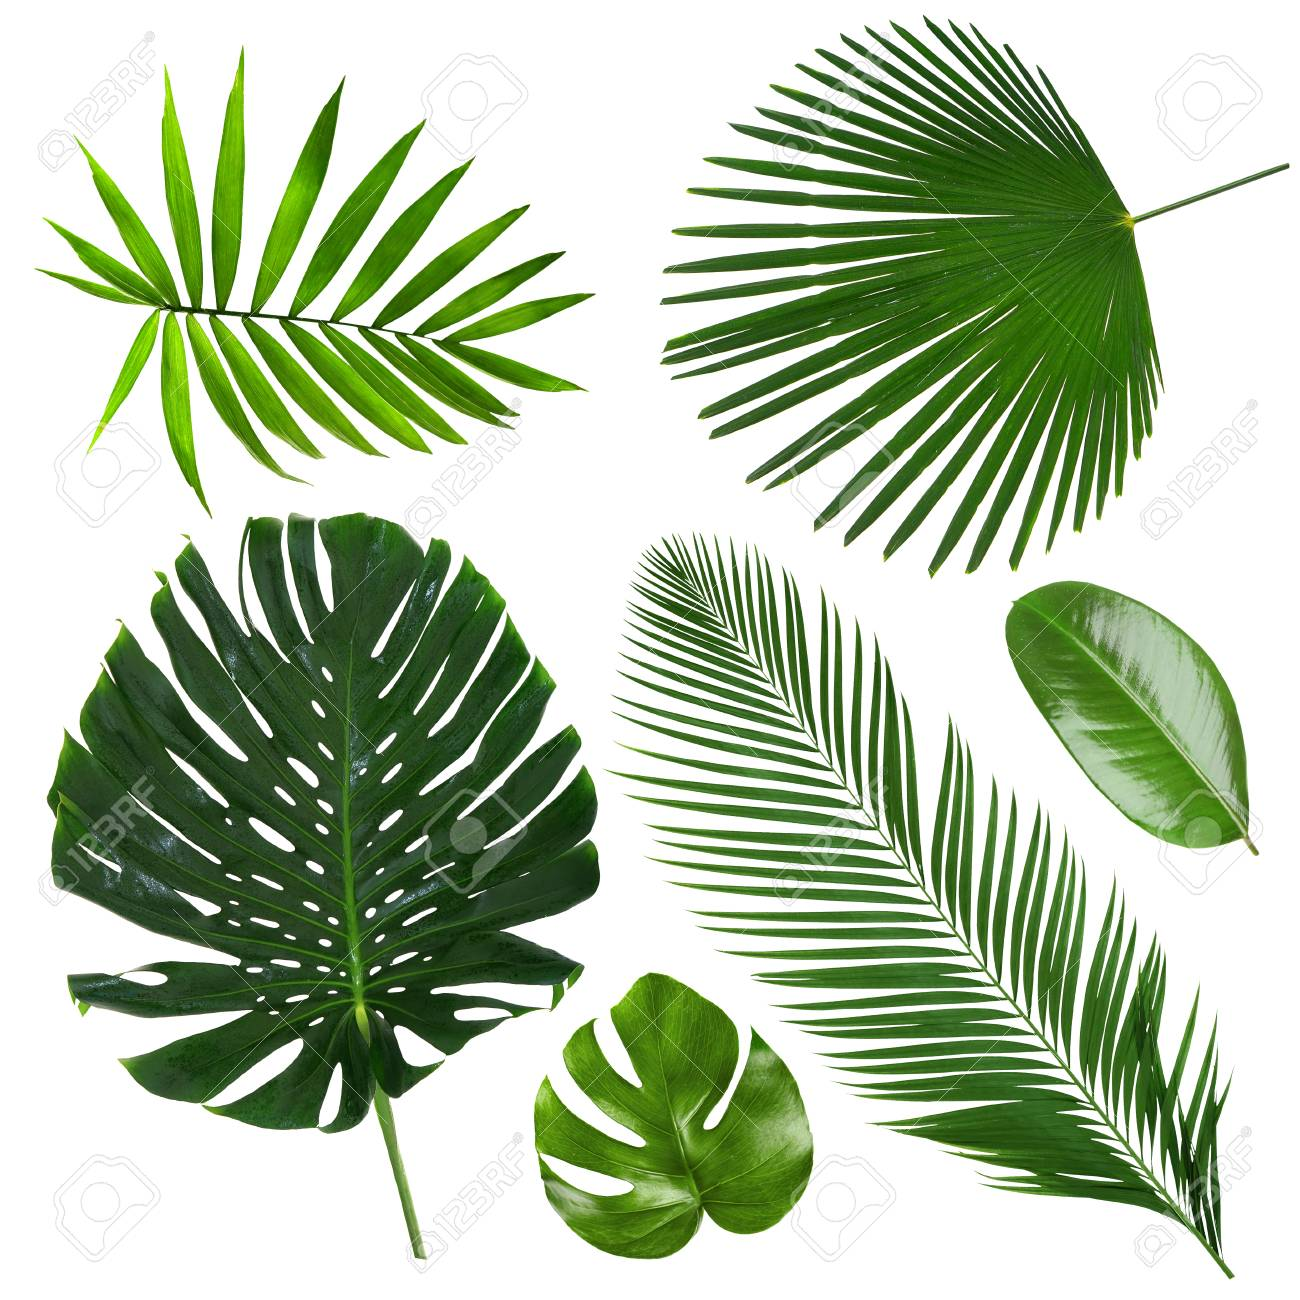 Different Tropical Leaves On White Background Stock Photo Picture And Royalty Free Image Image 91441082 4k and hd video ready for any nle immediately. 123rf com